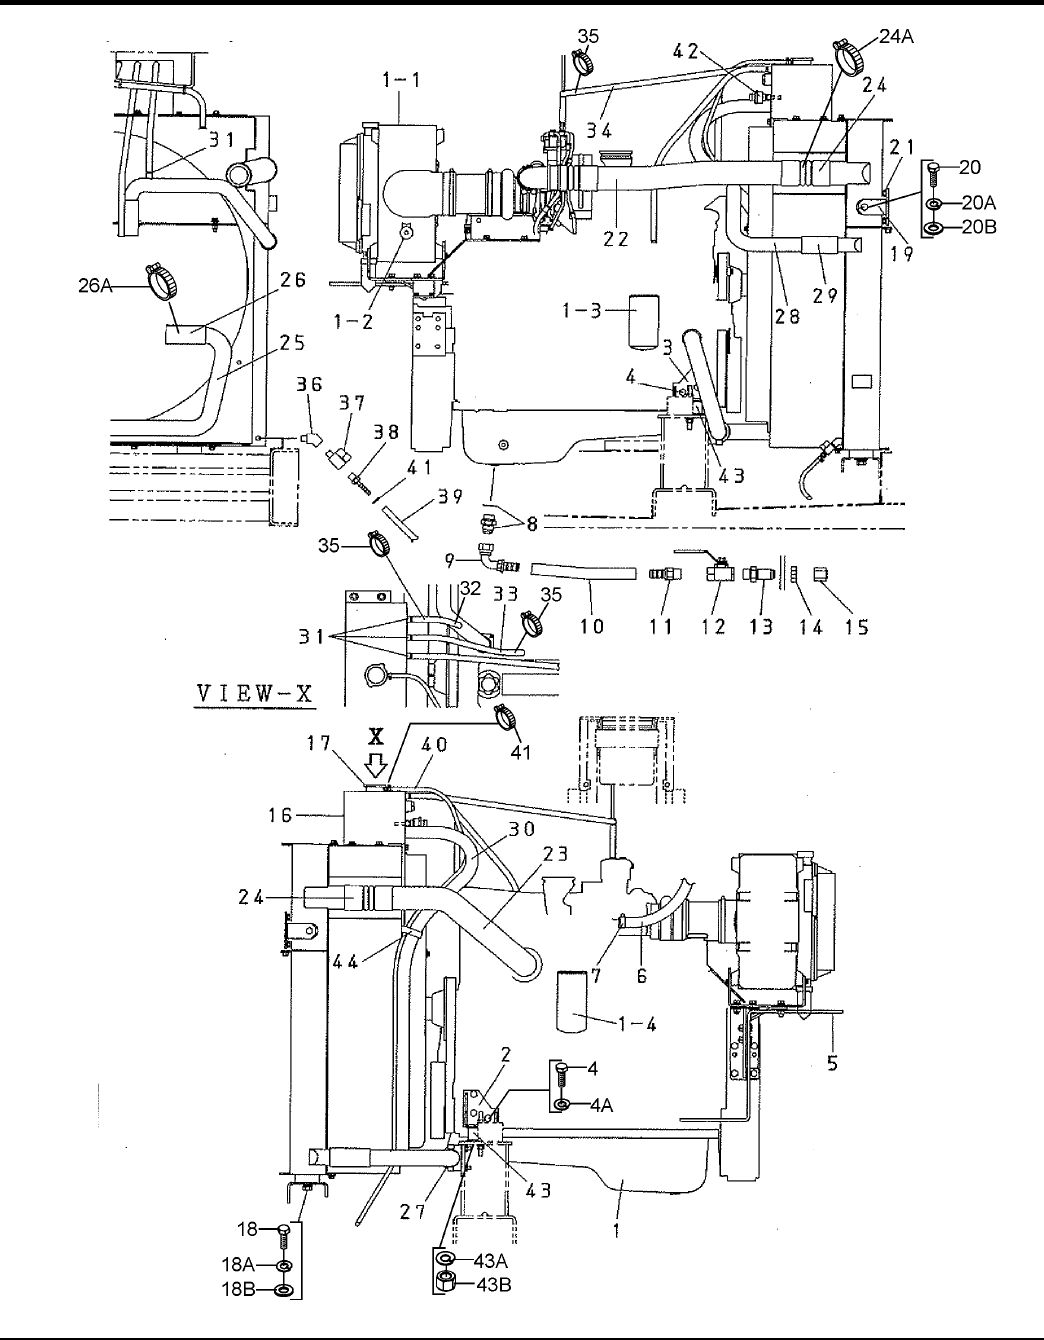 multiquip dca220sscu users manual High Leg Delta Wiring page 66 dca220sscu 4i 60 hz generator operation and parts manual rev 10 25 12